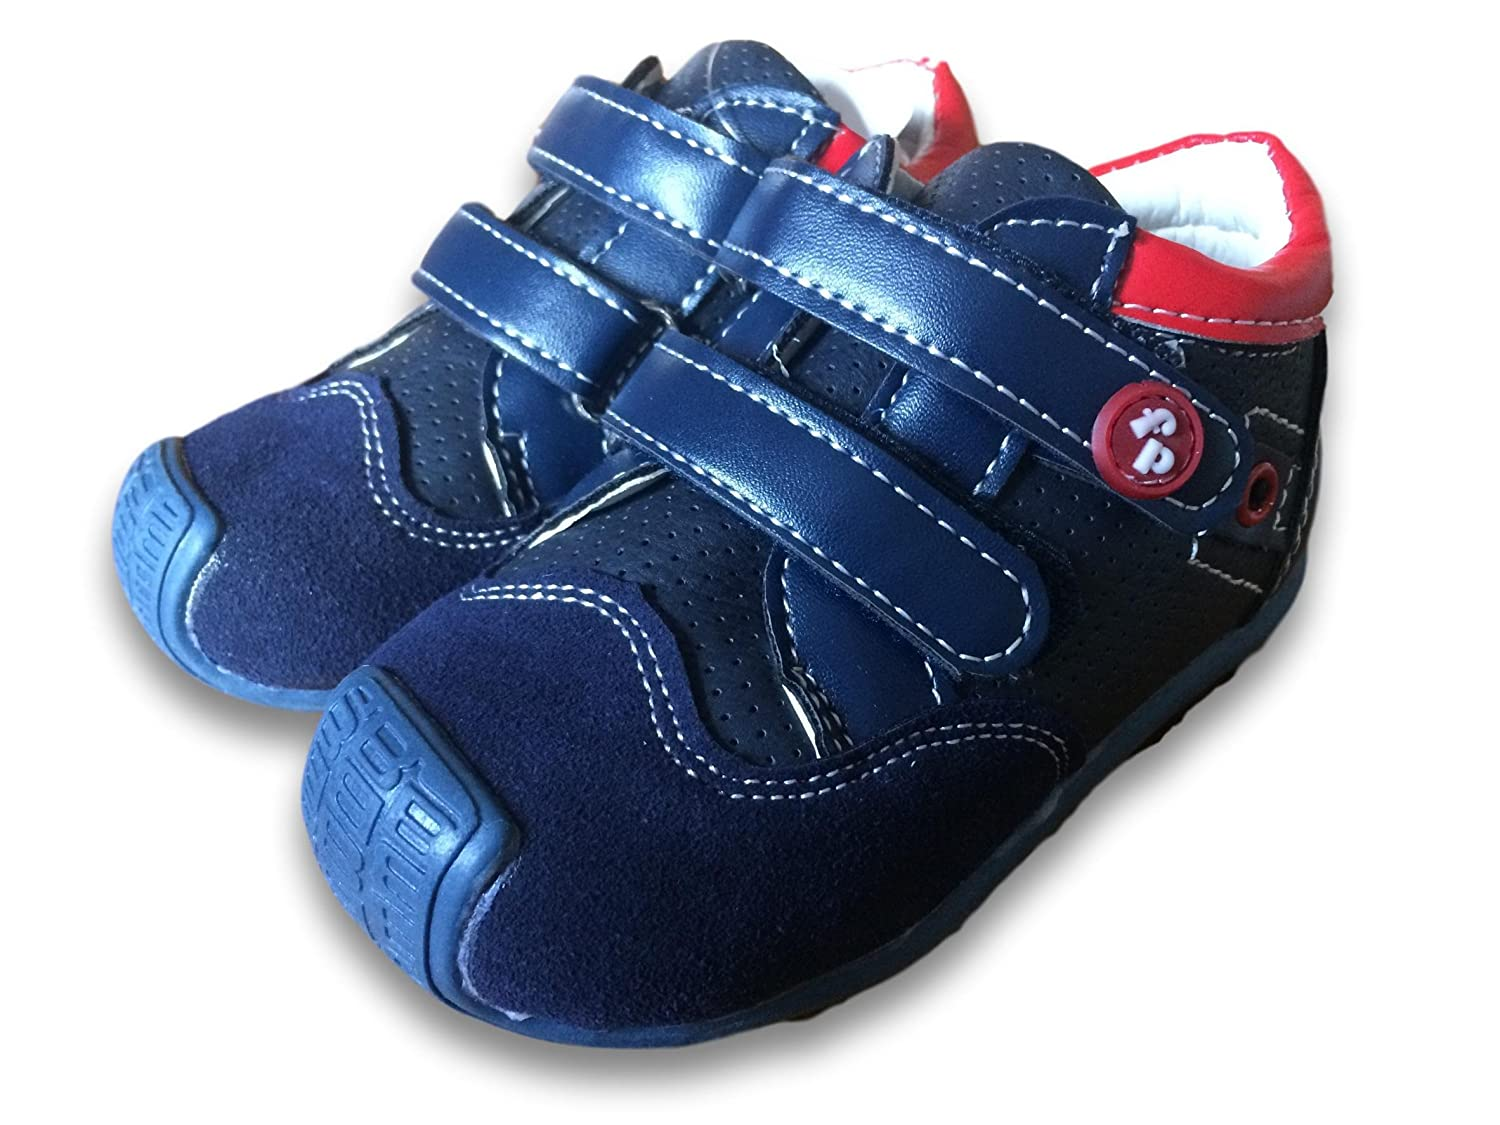 Fisher Price Boys Infants Toddler Shoes